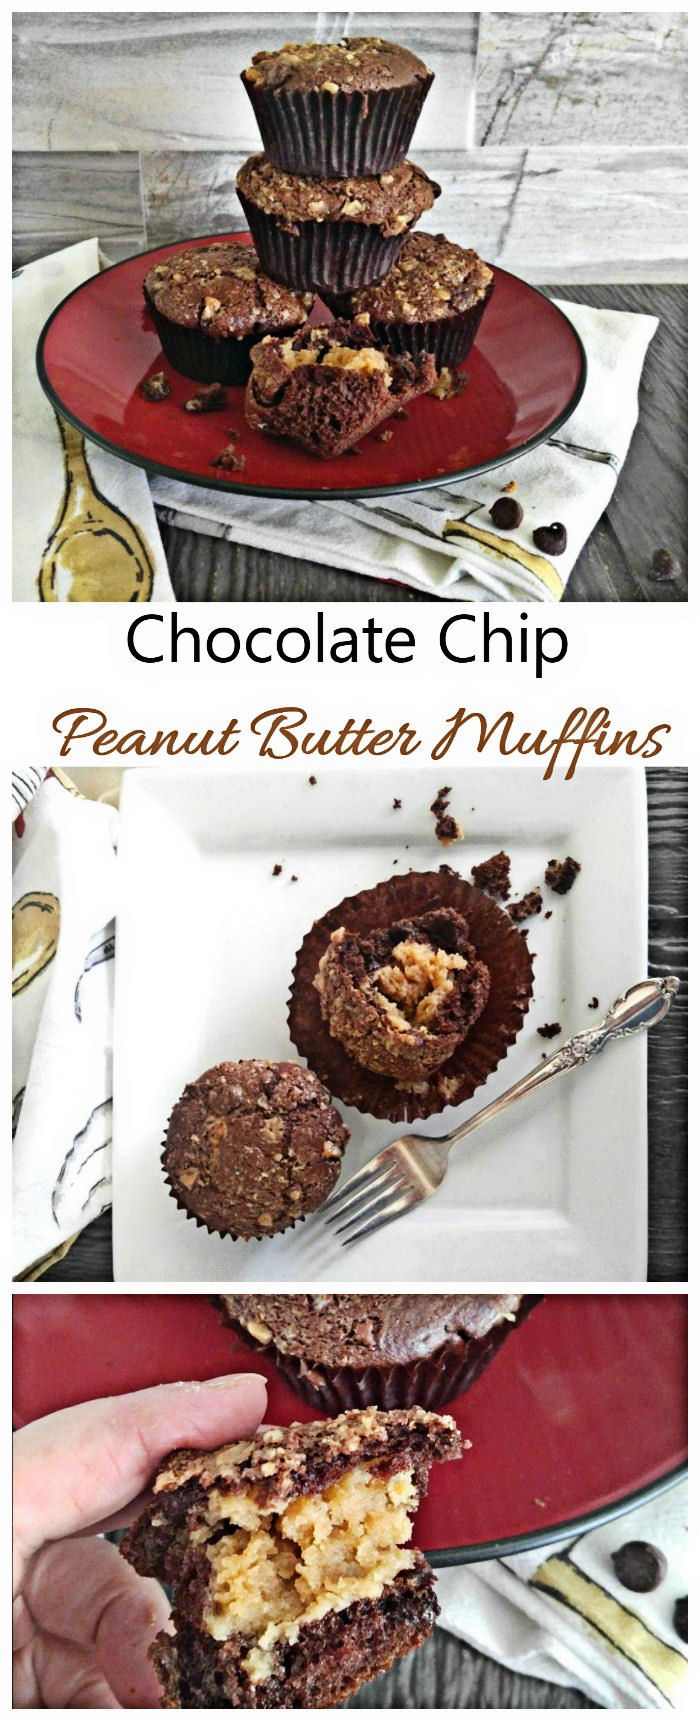 These Chocolate Peanut Butter Muffins are just plain amazing. They are a cross between a muffin and a cupcake.